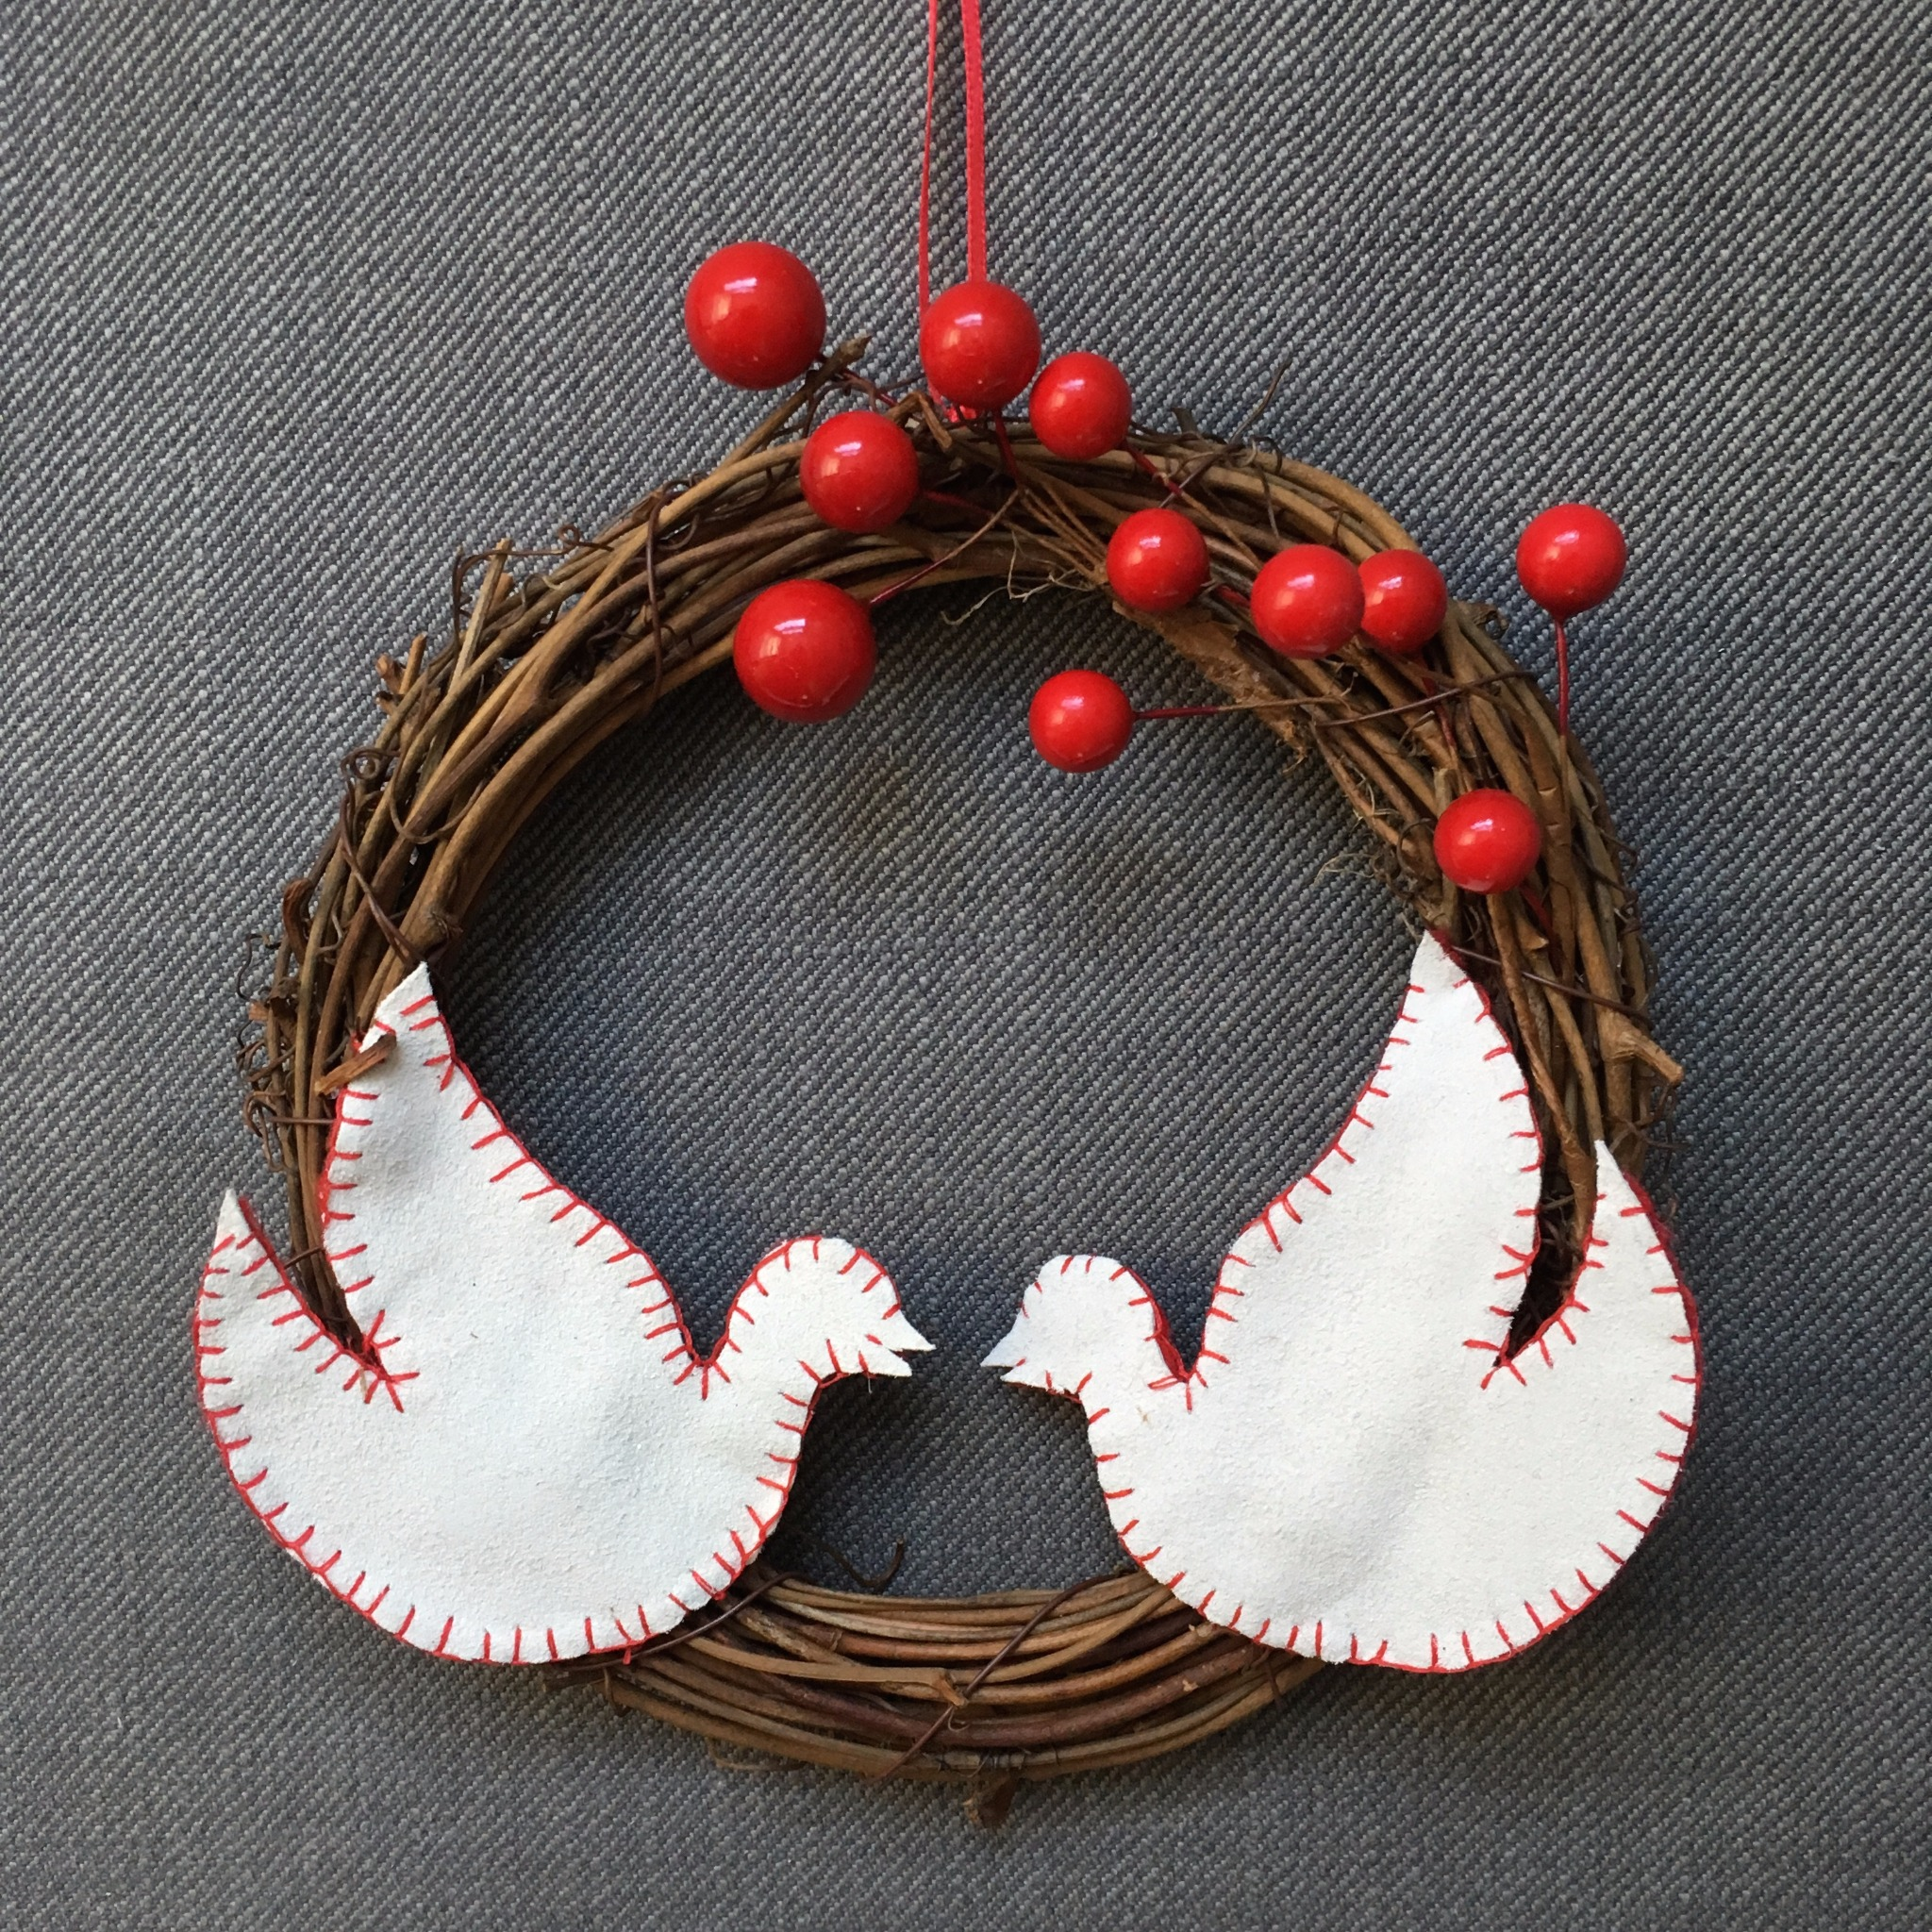 Dove with Berries Wreath Kit